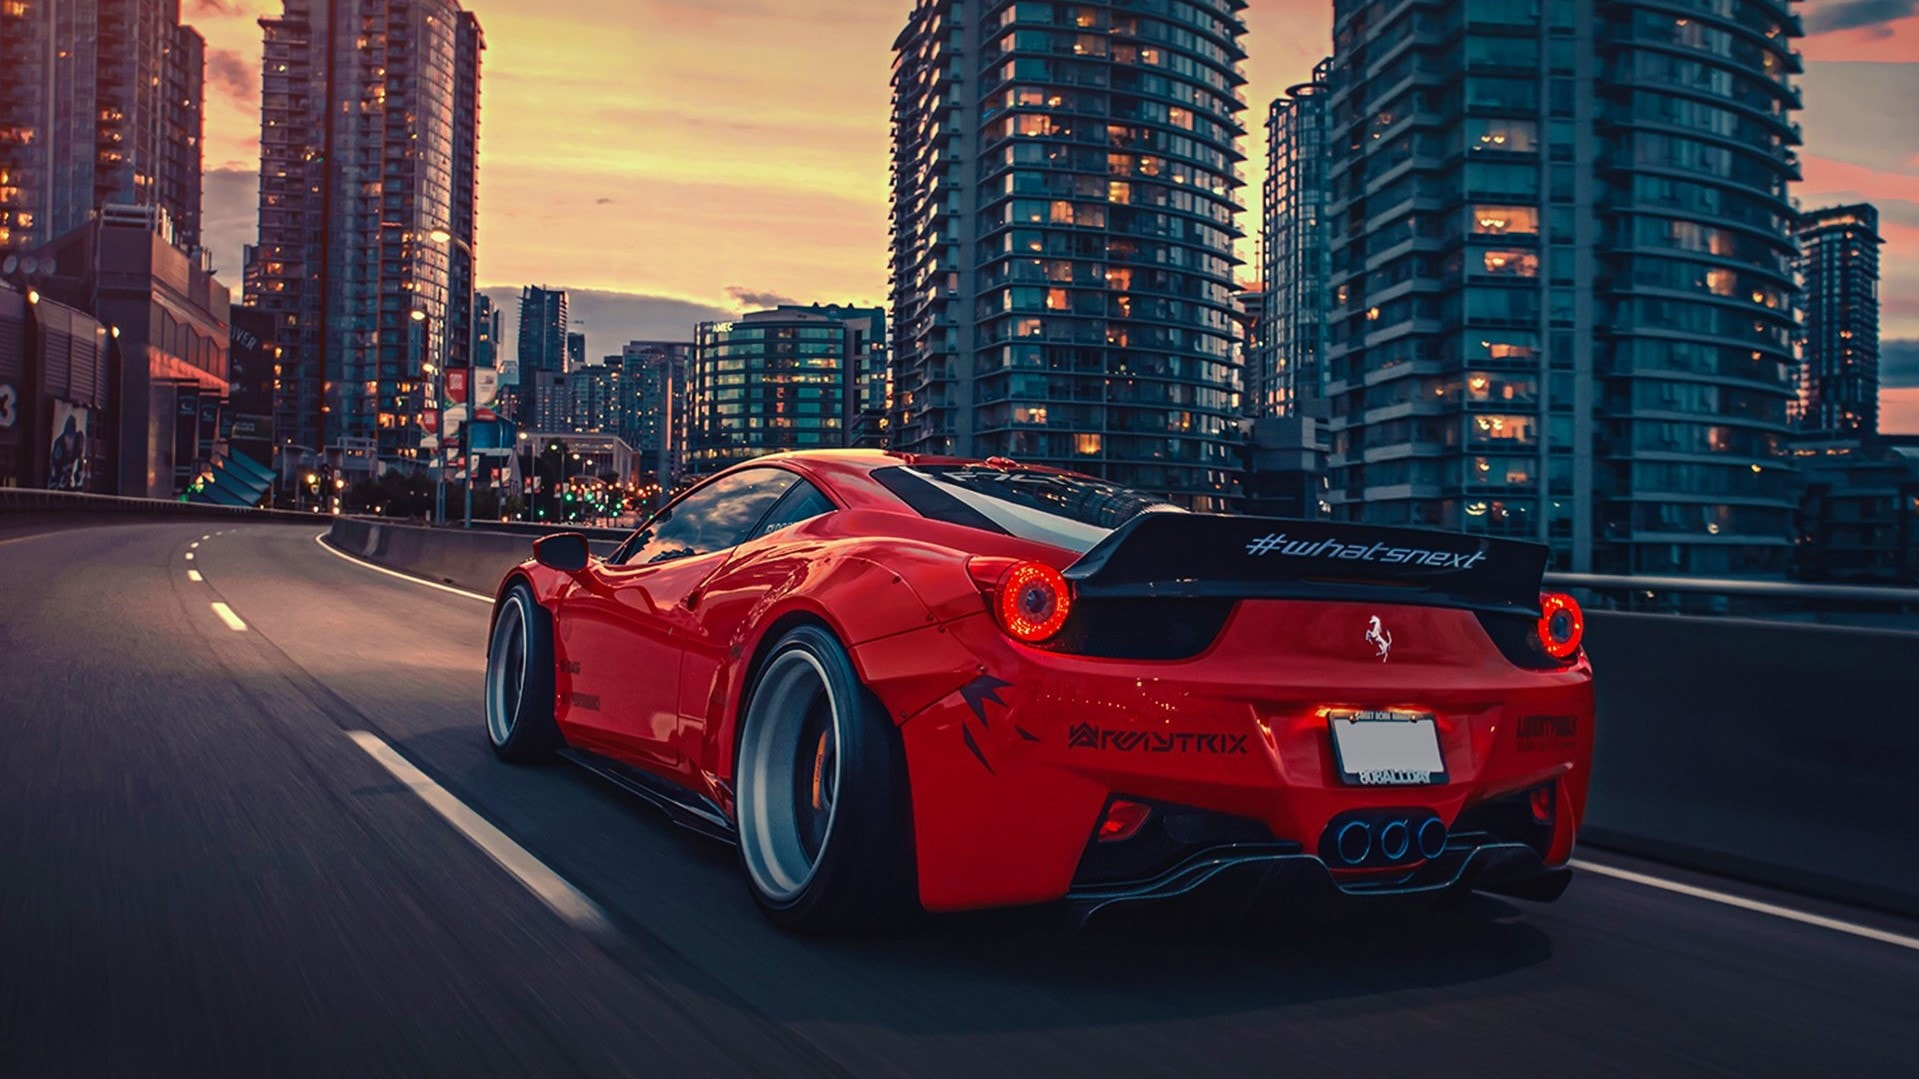 Ferrari 458 Full HD Wallpaper and Background